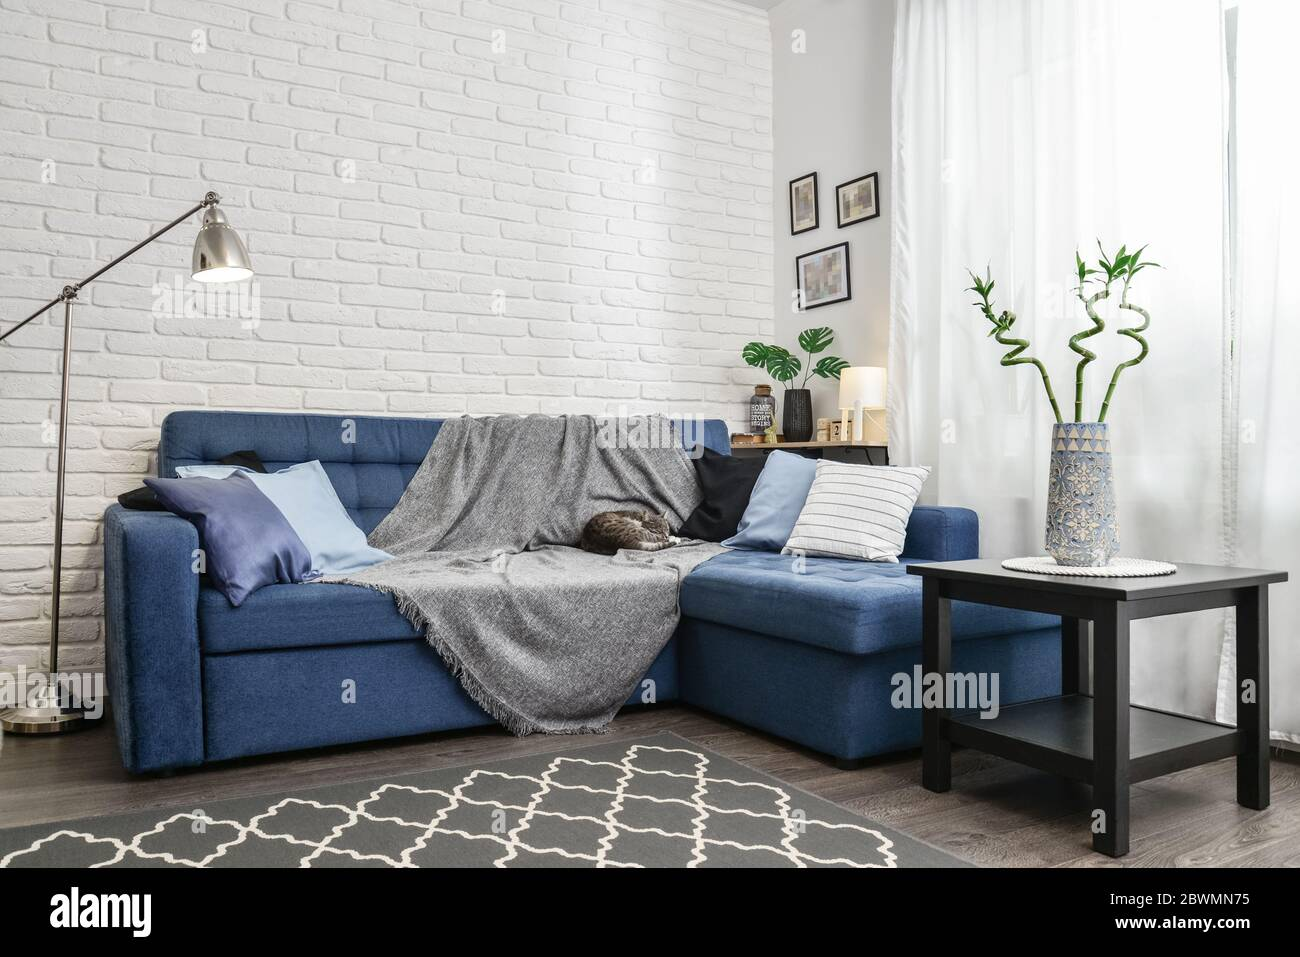 Bright Living Room In Scandinavian Style With Blue Couch Decorative Pillows White Brick Wall And White Curtains Design Interior Concept Stock Photo Alamy